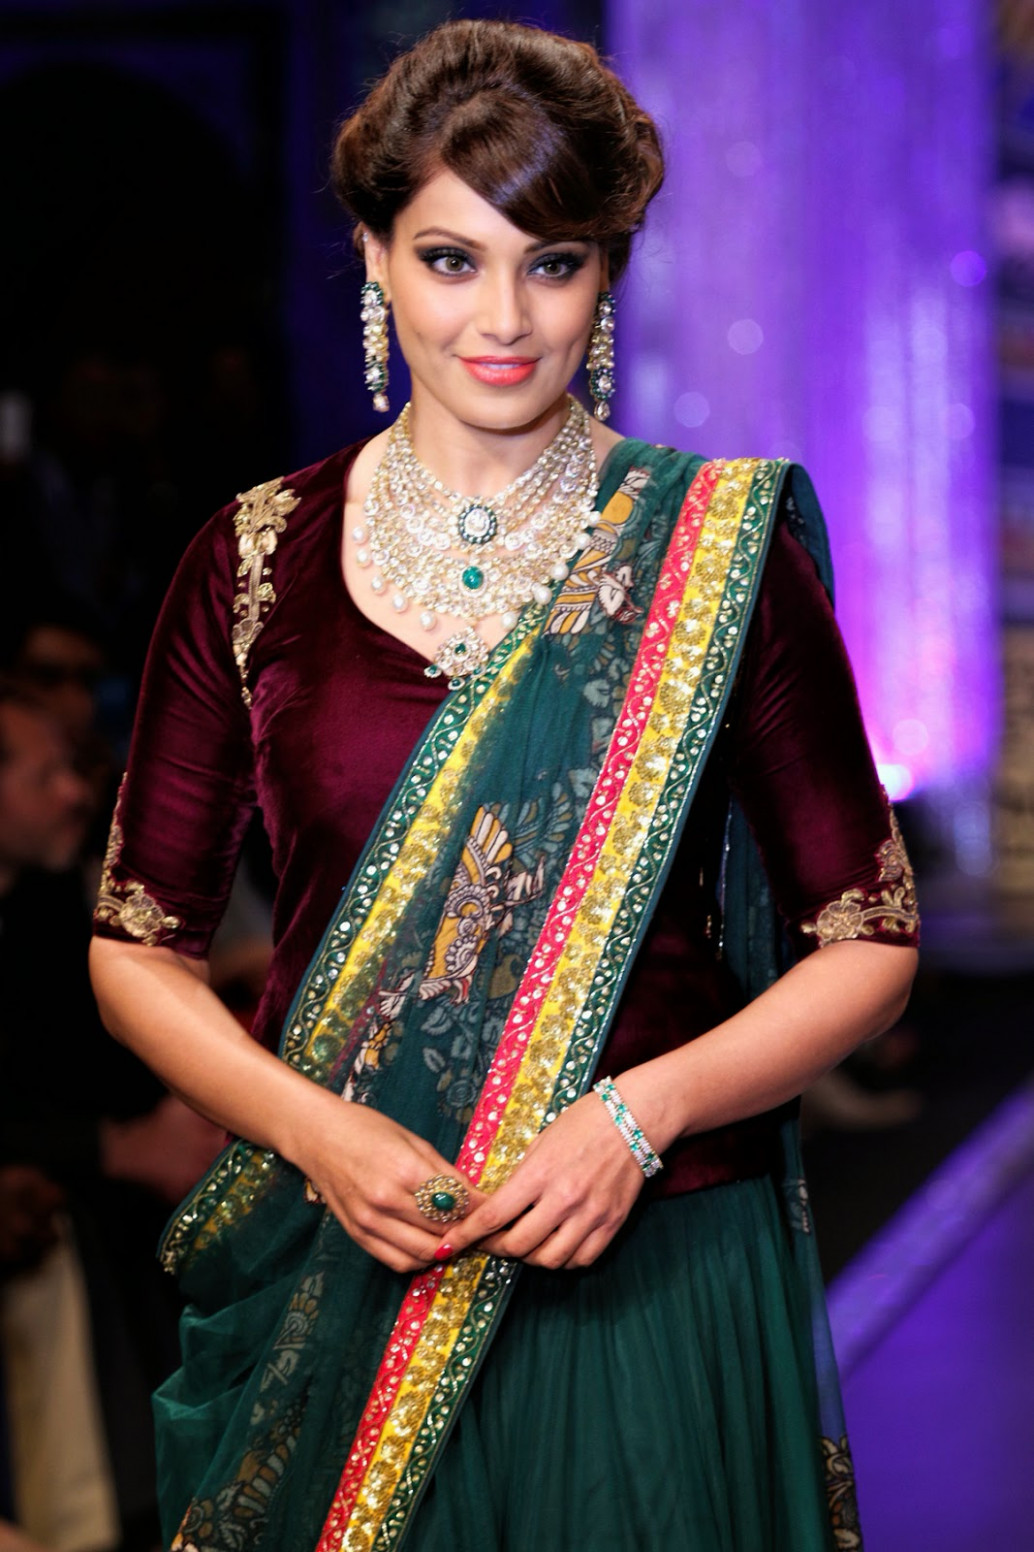 India Bridal Fashion Week 2014 Wallpapers | HD Wallpapers ...